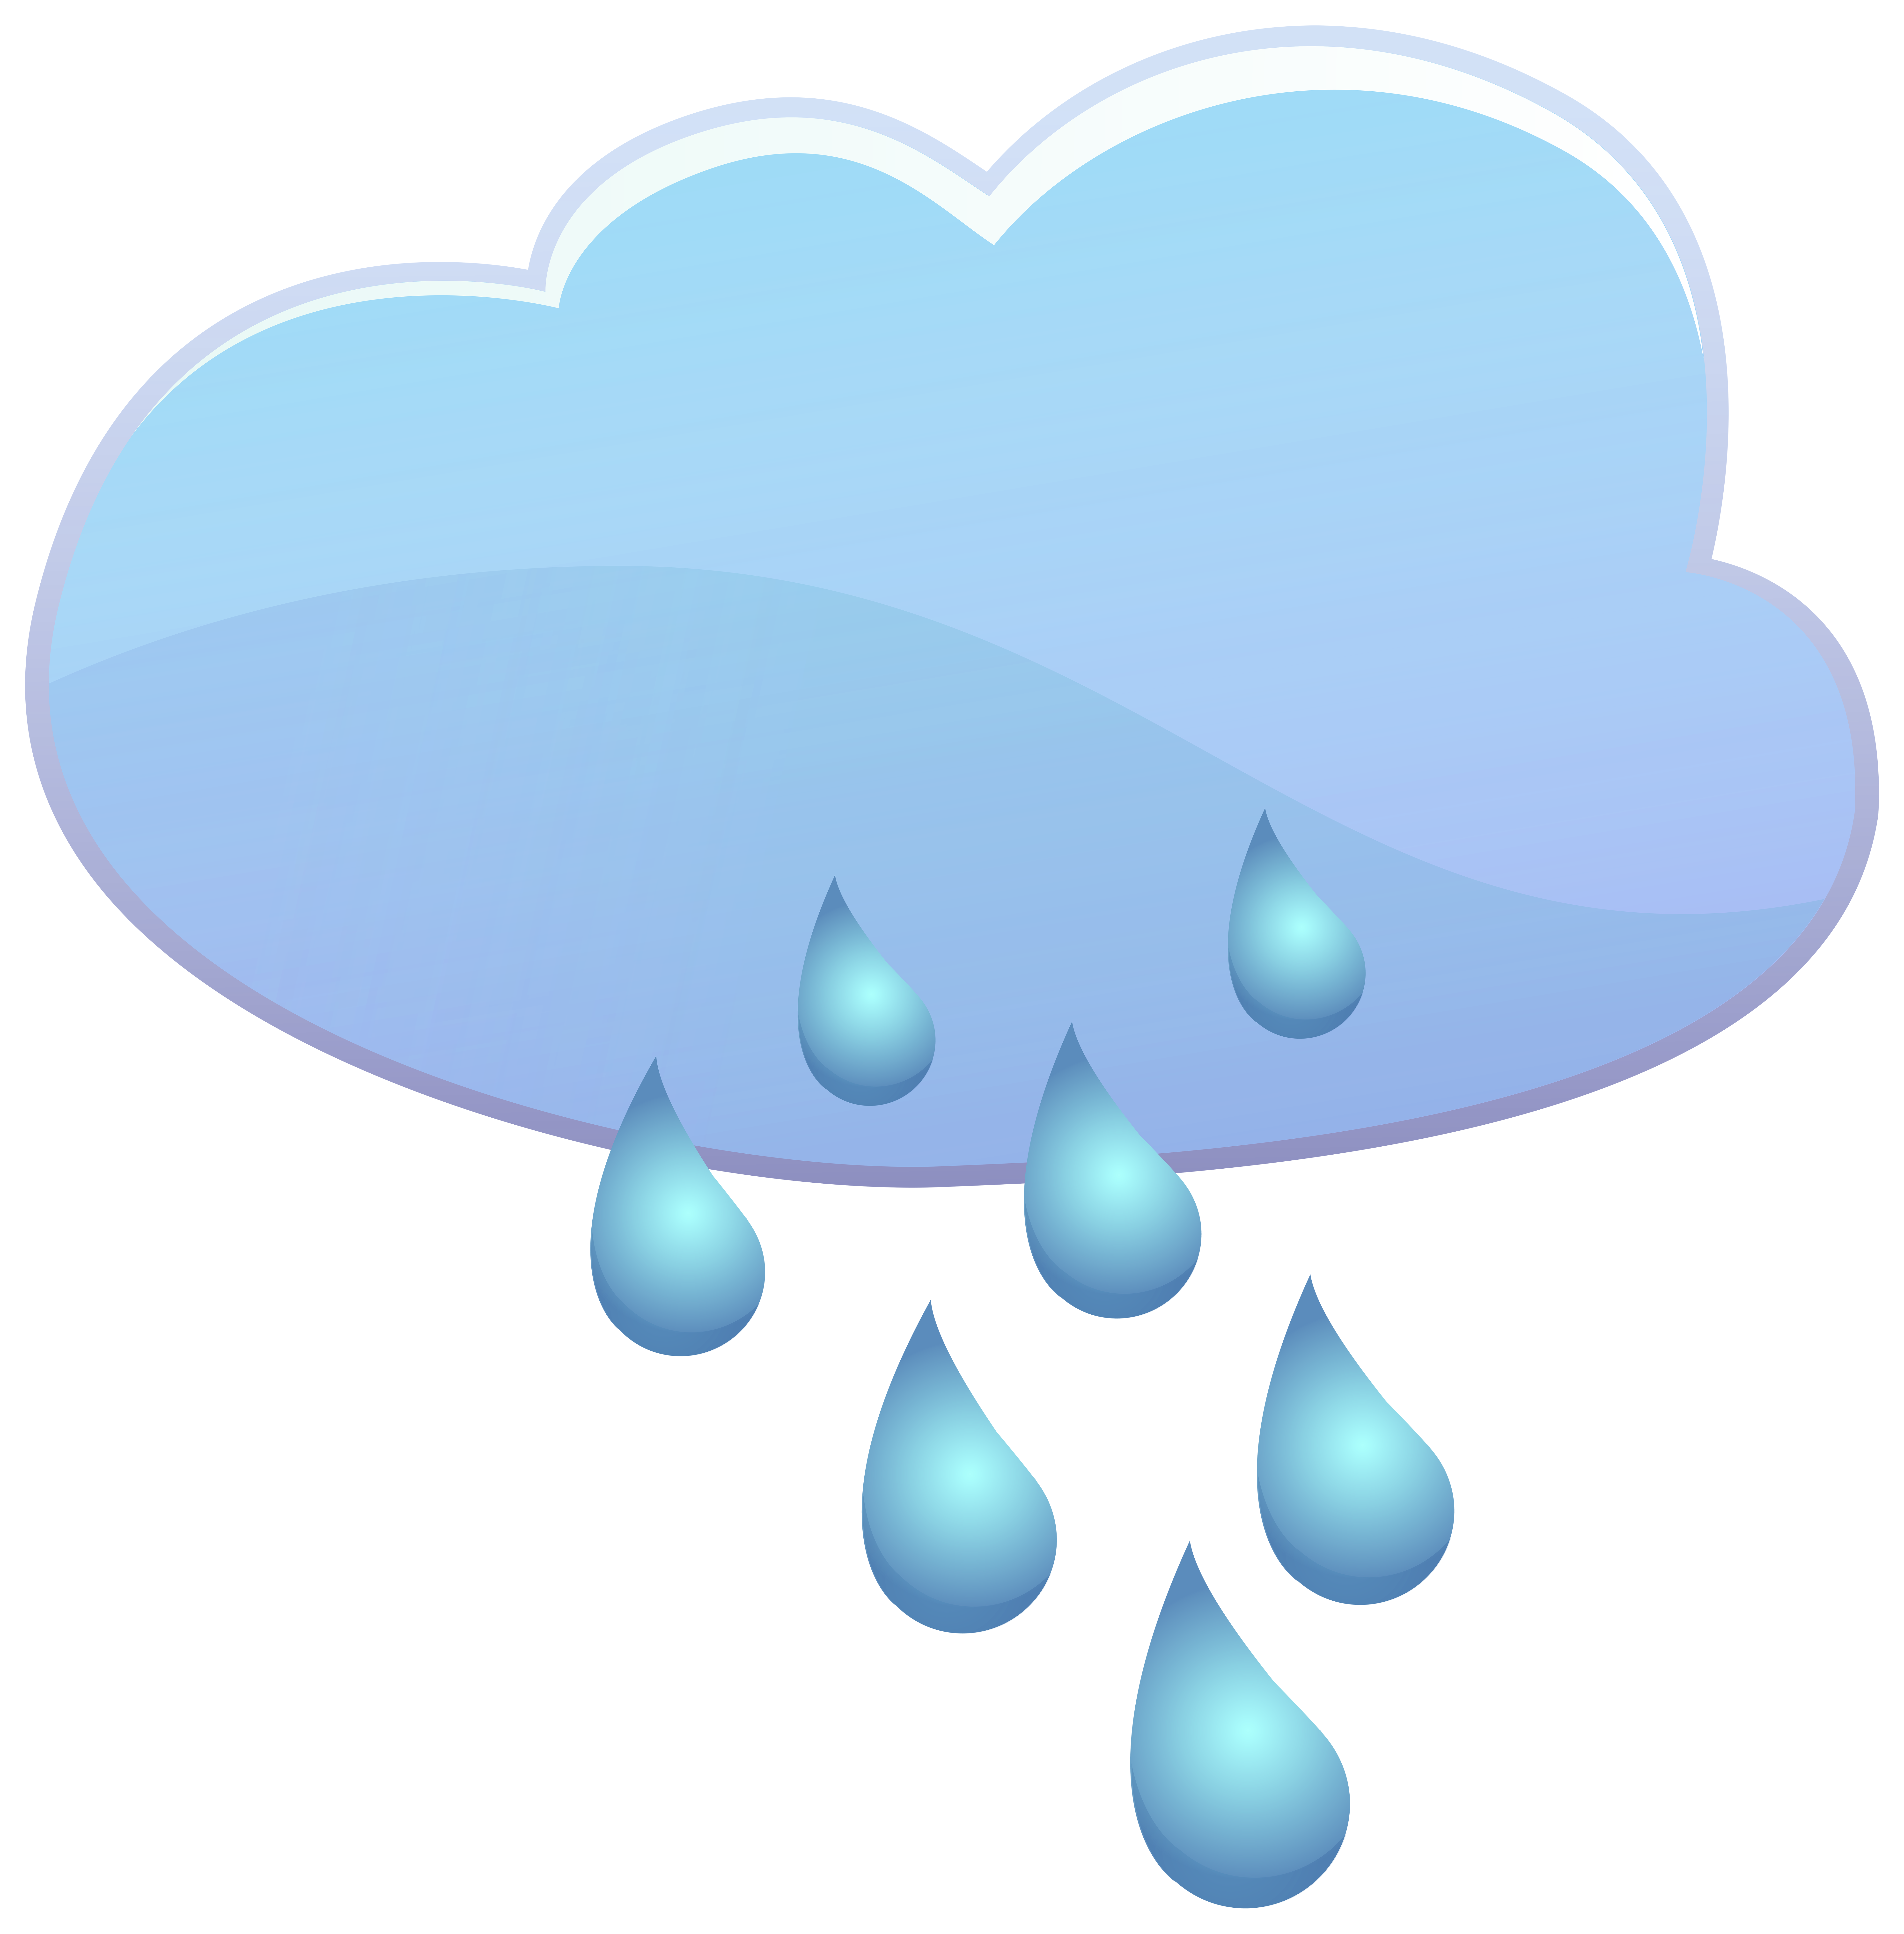 Cloud and drops weather. Grass clipart rain